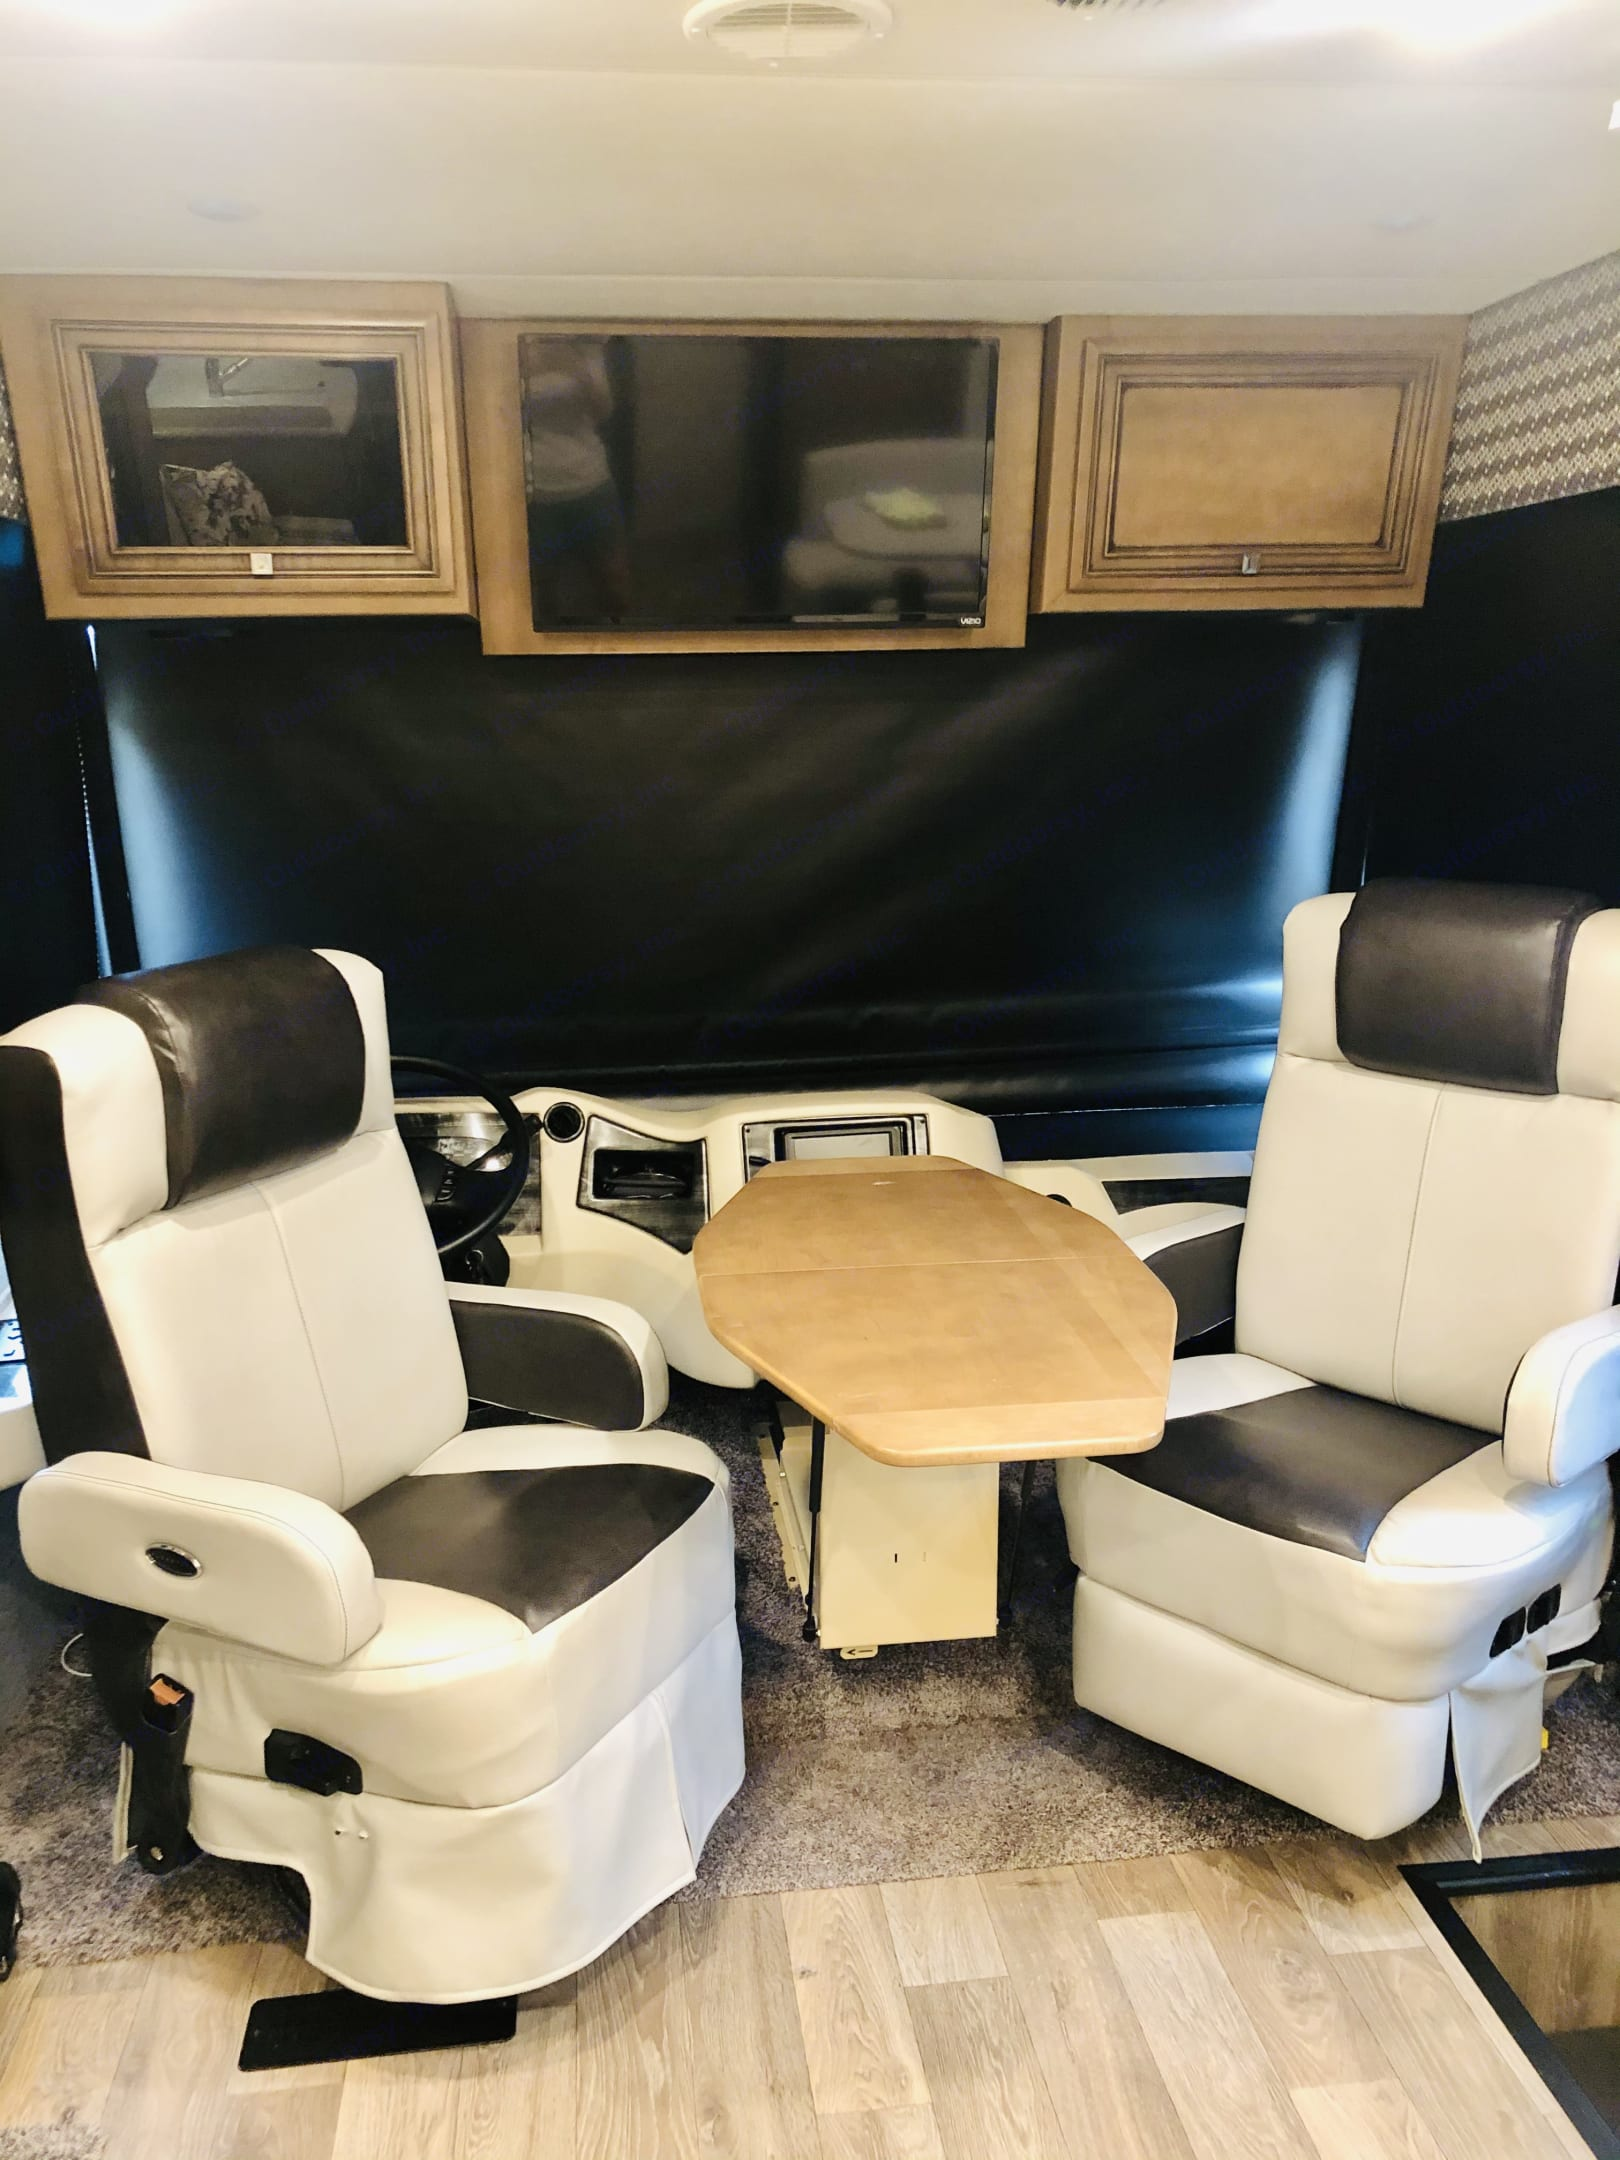 We enjoy using this table when all five of us are having an indoor meal or playing cards. . Newmar Bay Star 2019